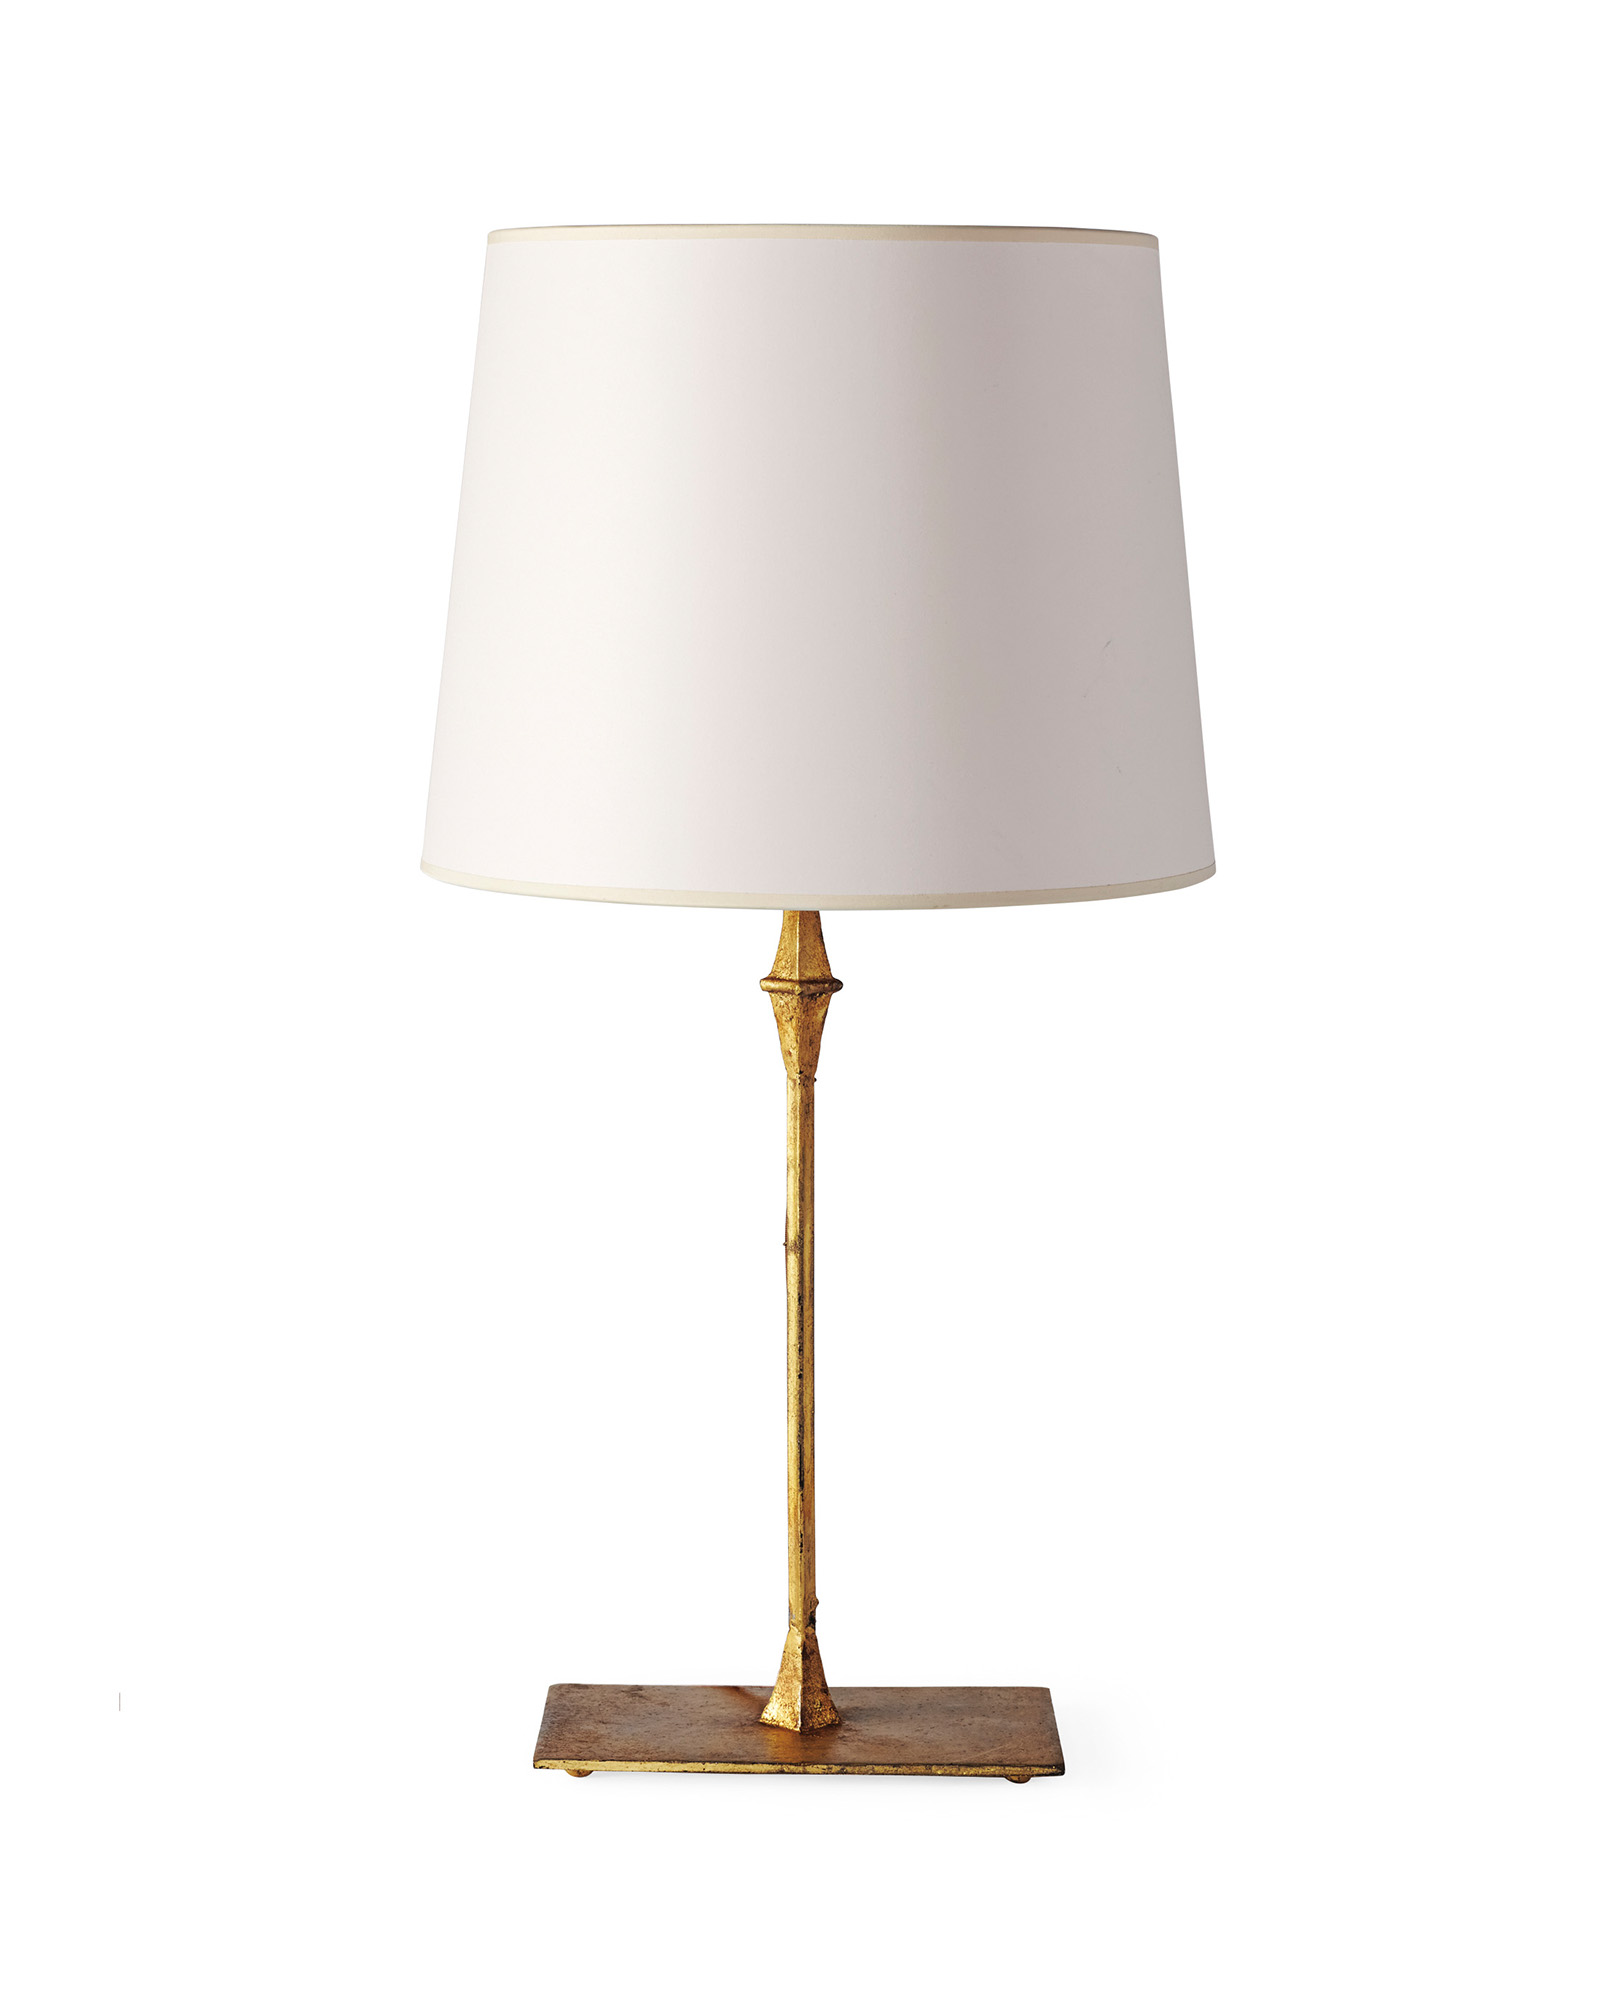 Dauphine Table Lamp,